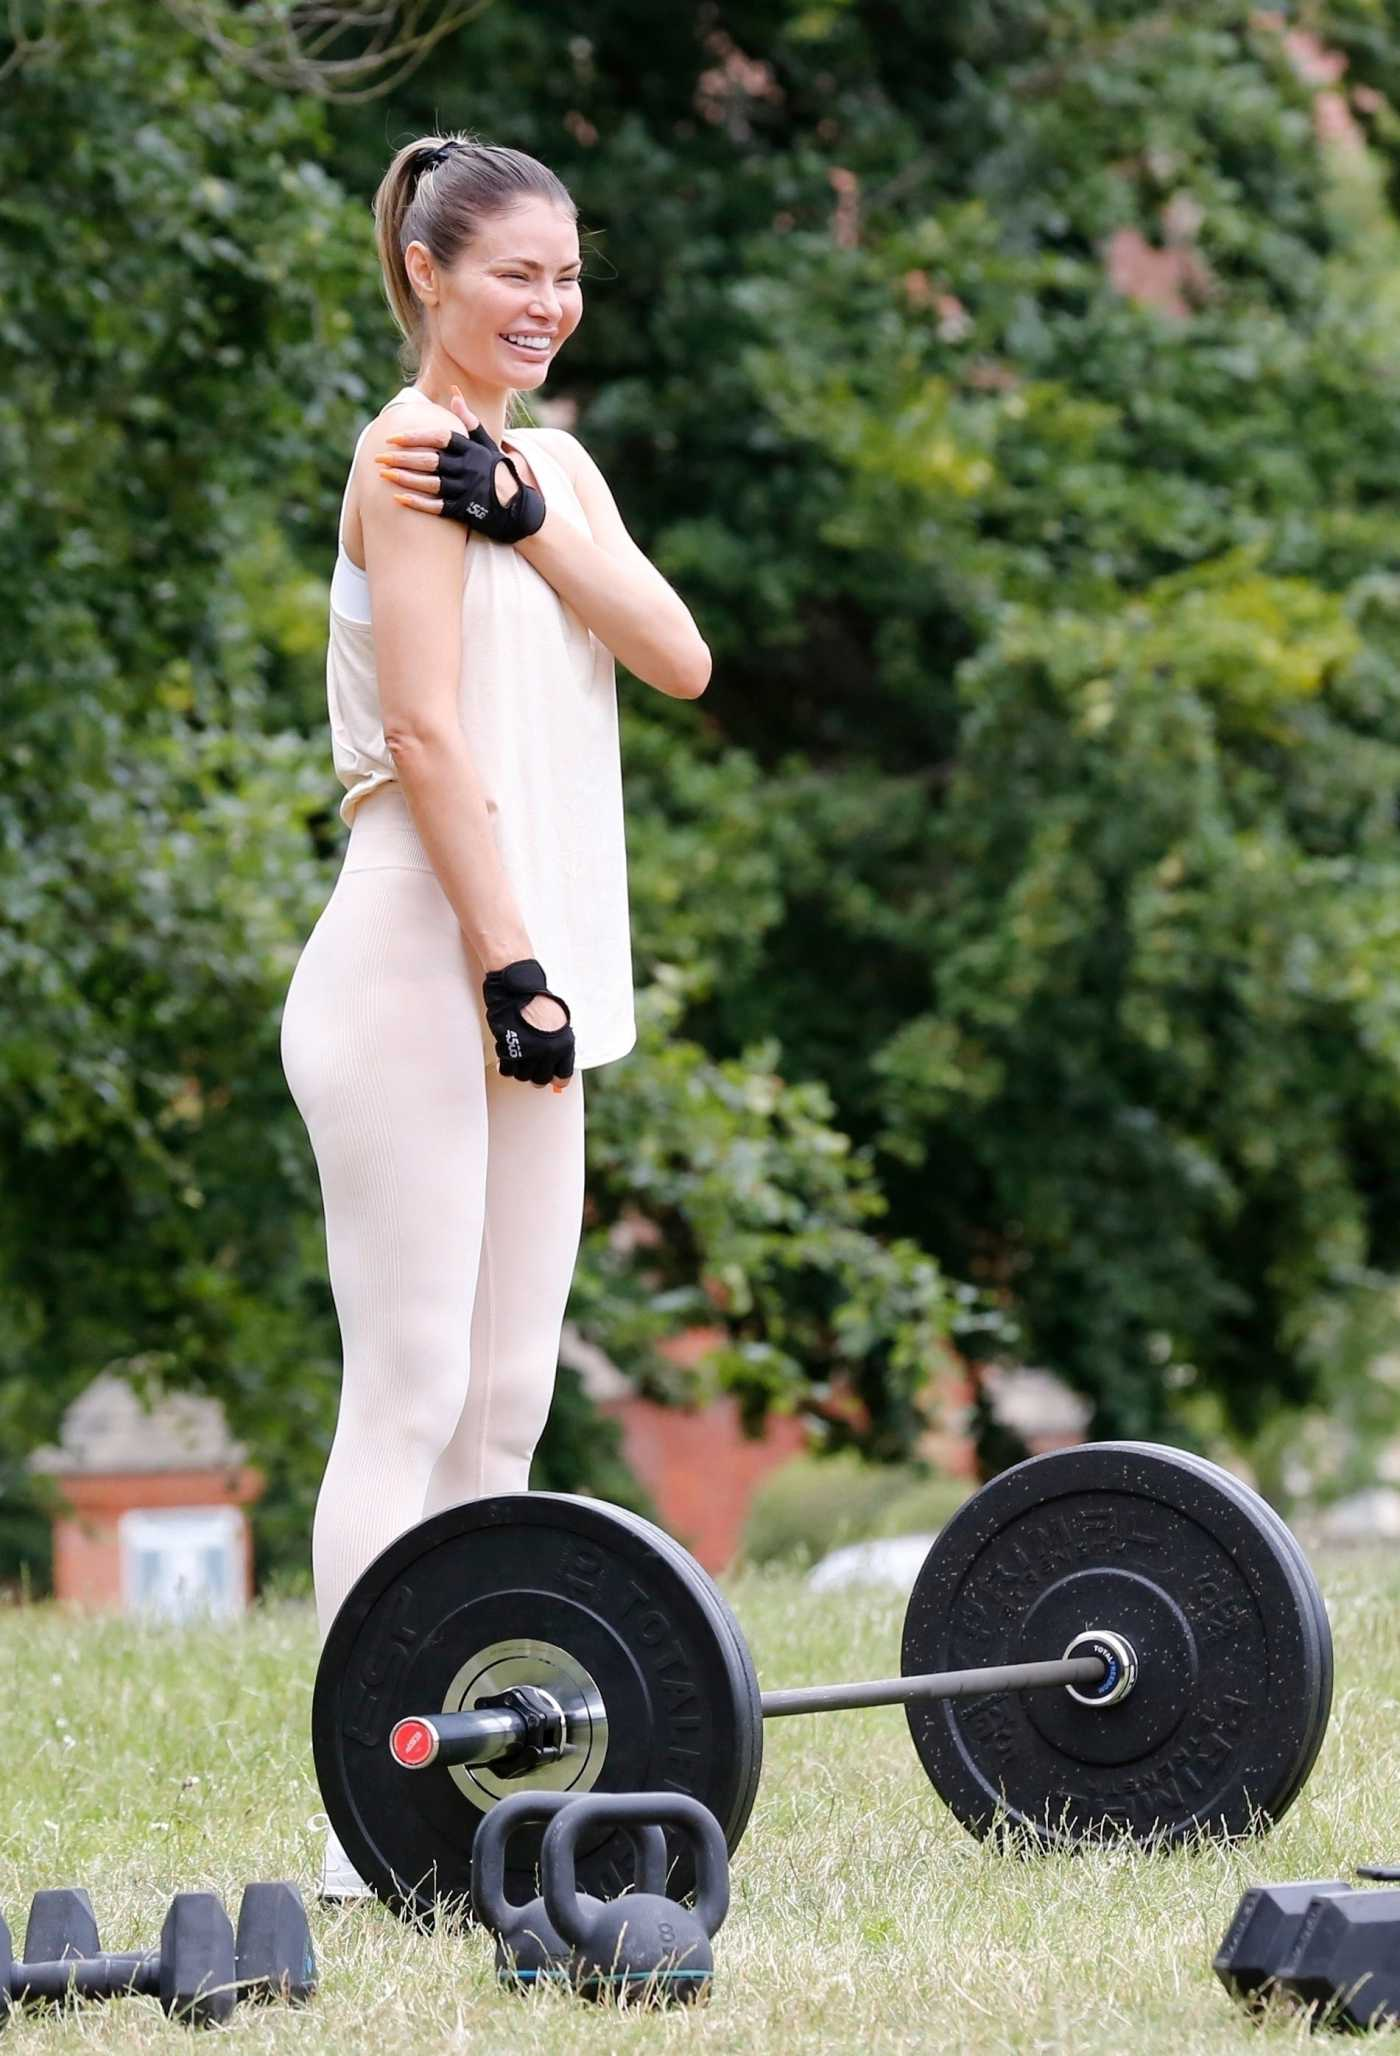 Chloe Sims in a Beige Leggings Does a Workout Session in Essex 07/07/2020